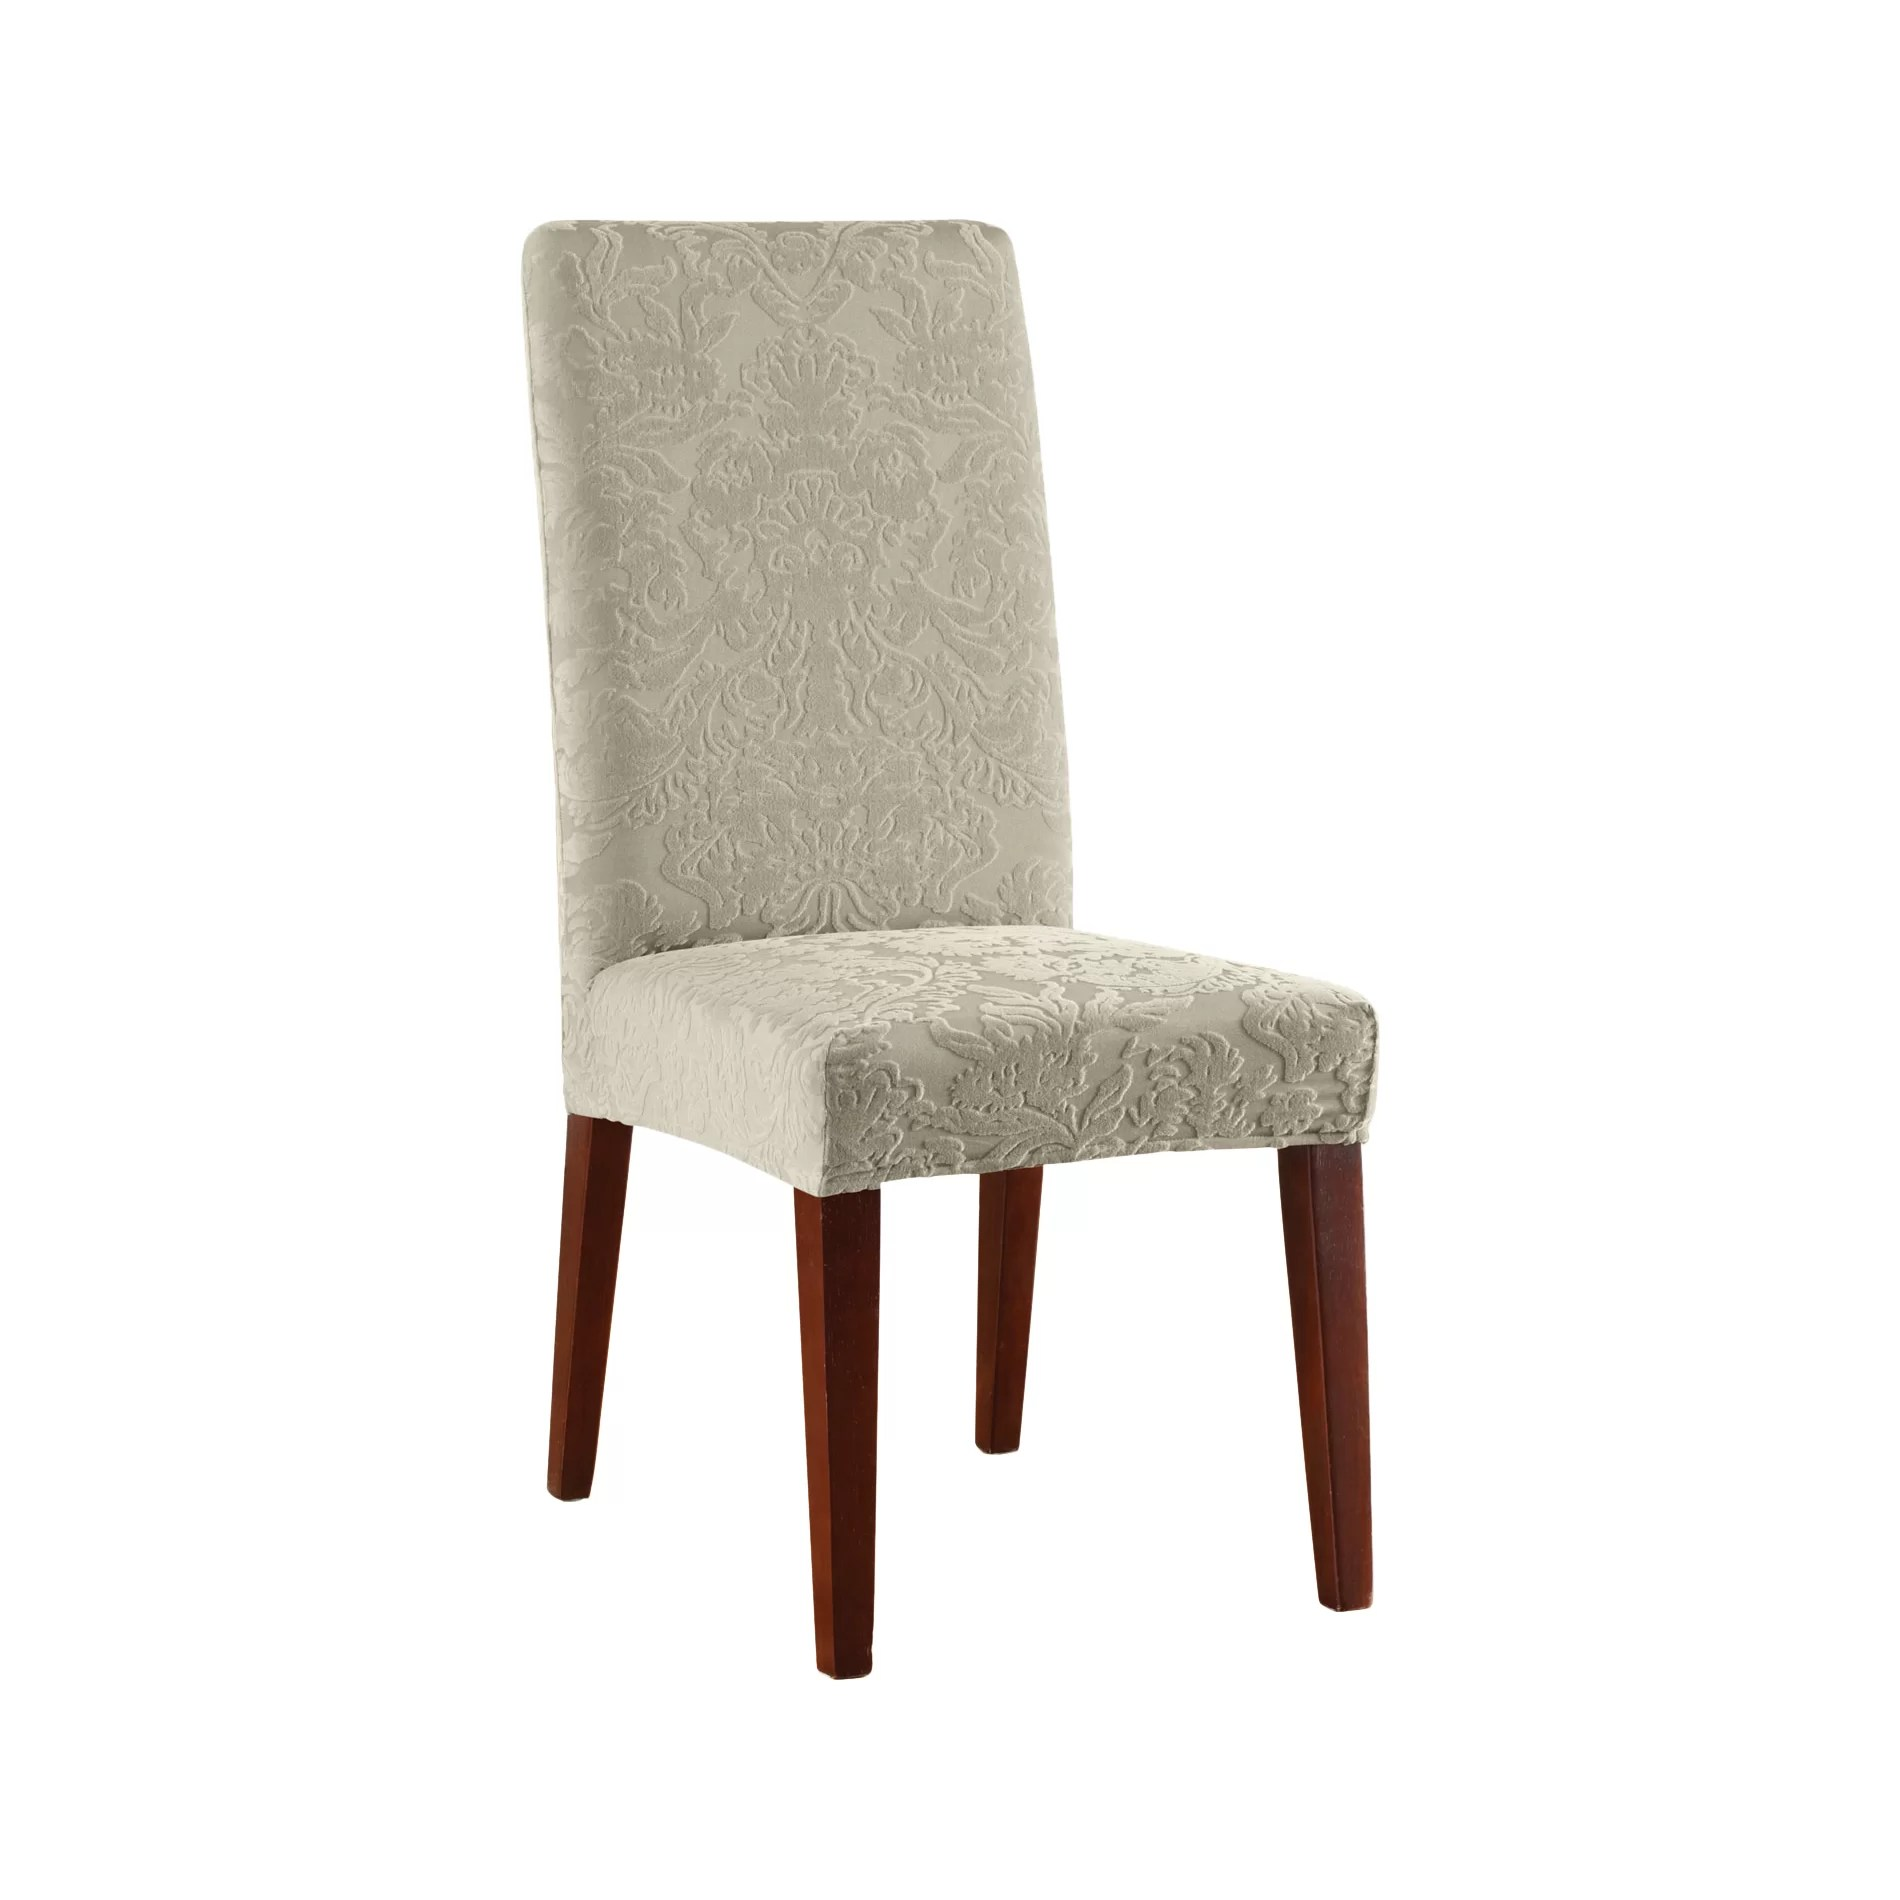 sure fit parsons chair slipcovers gym as seen on tv stretch jacquard damask dining slipcover